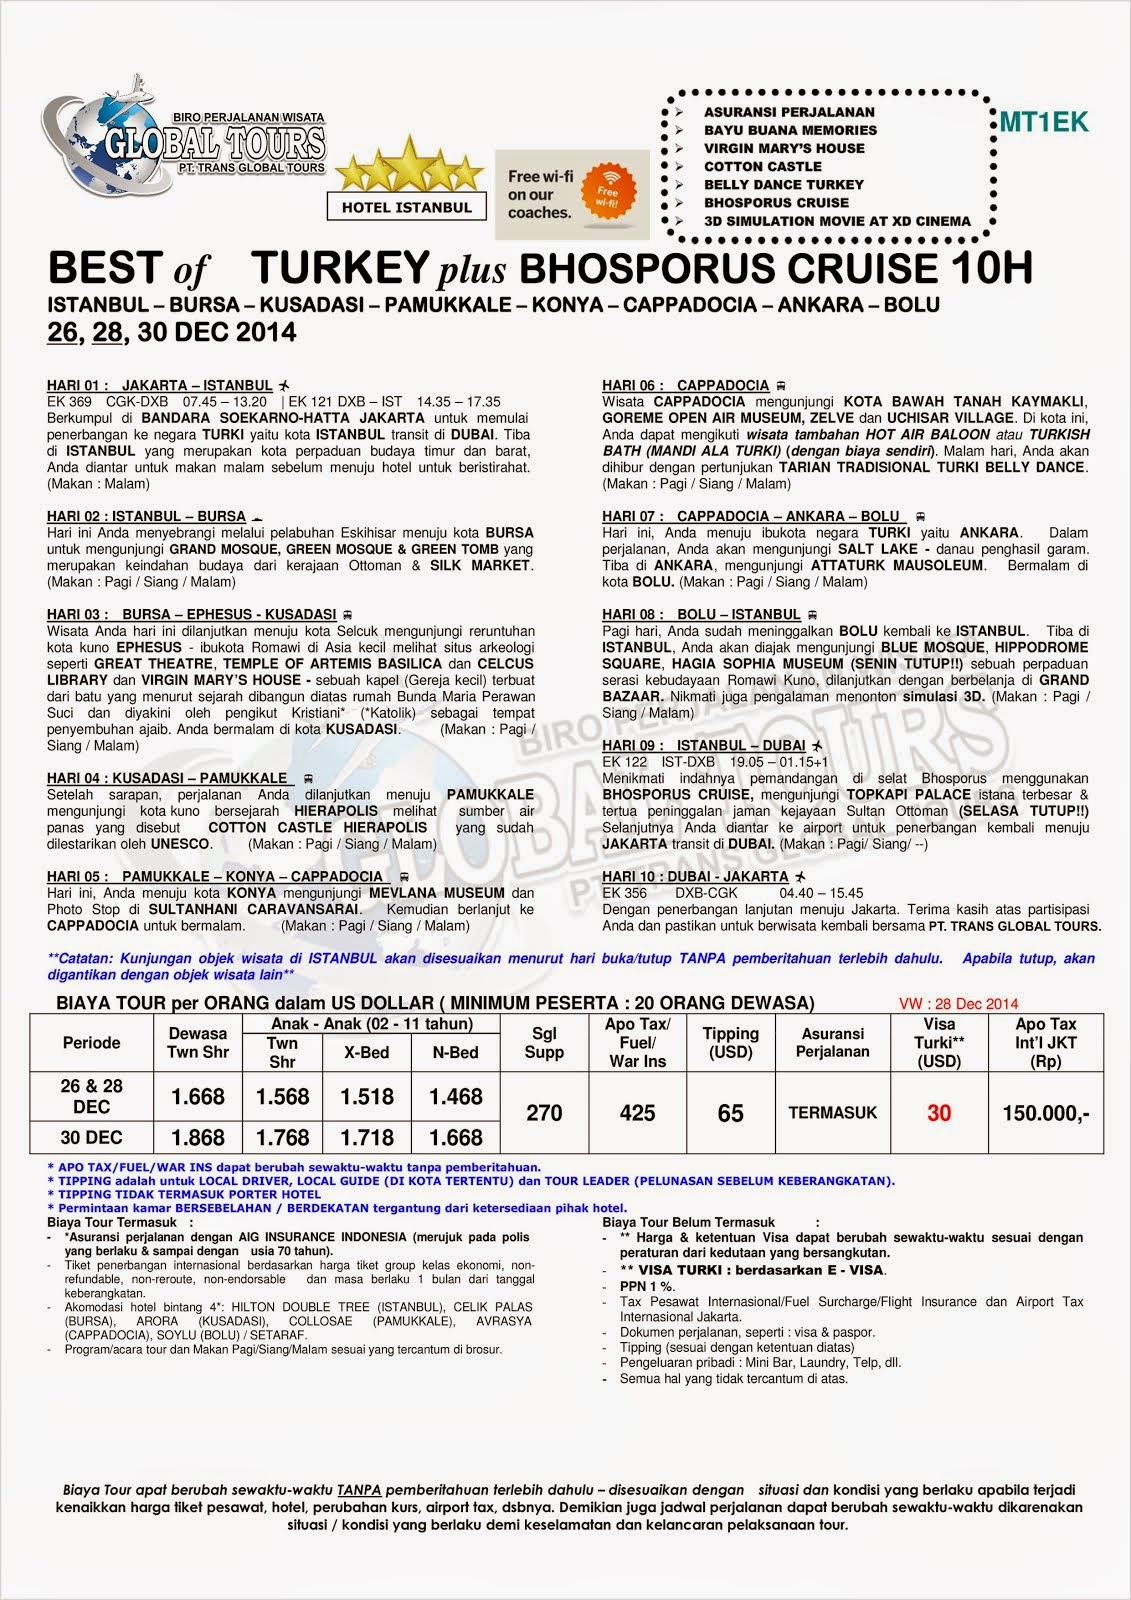 BEST OF TURKEY PLU BHOSPORUS CRUISE